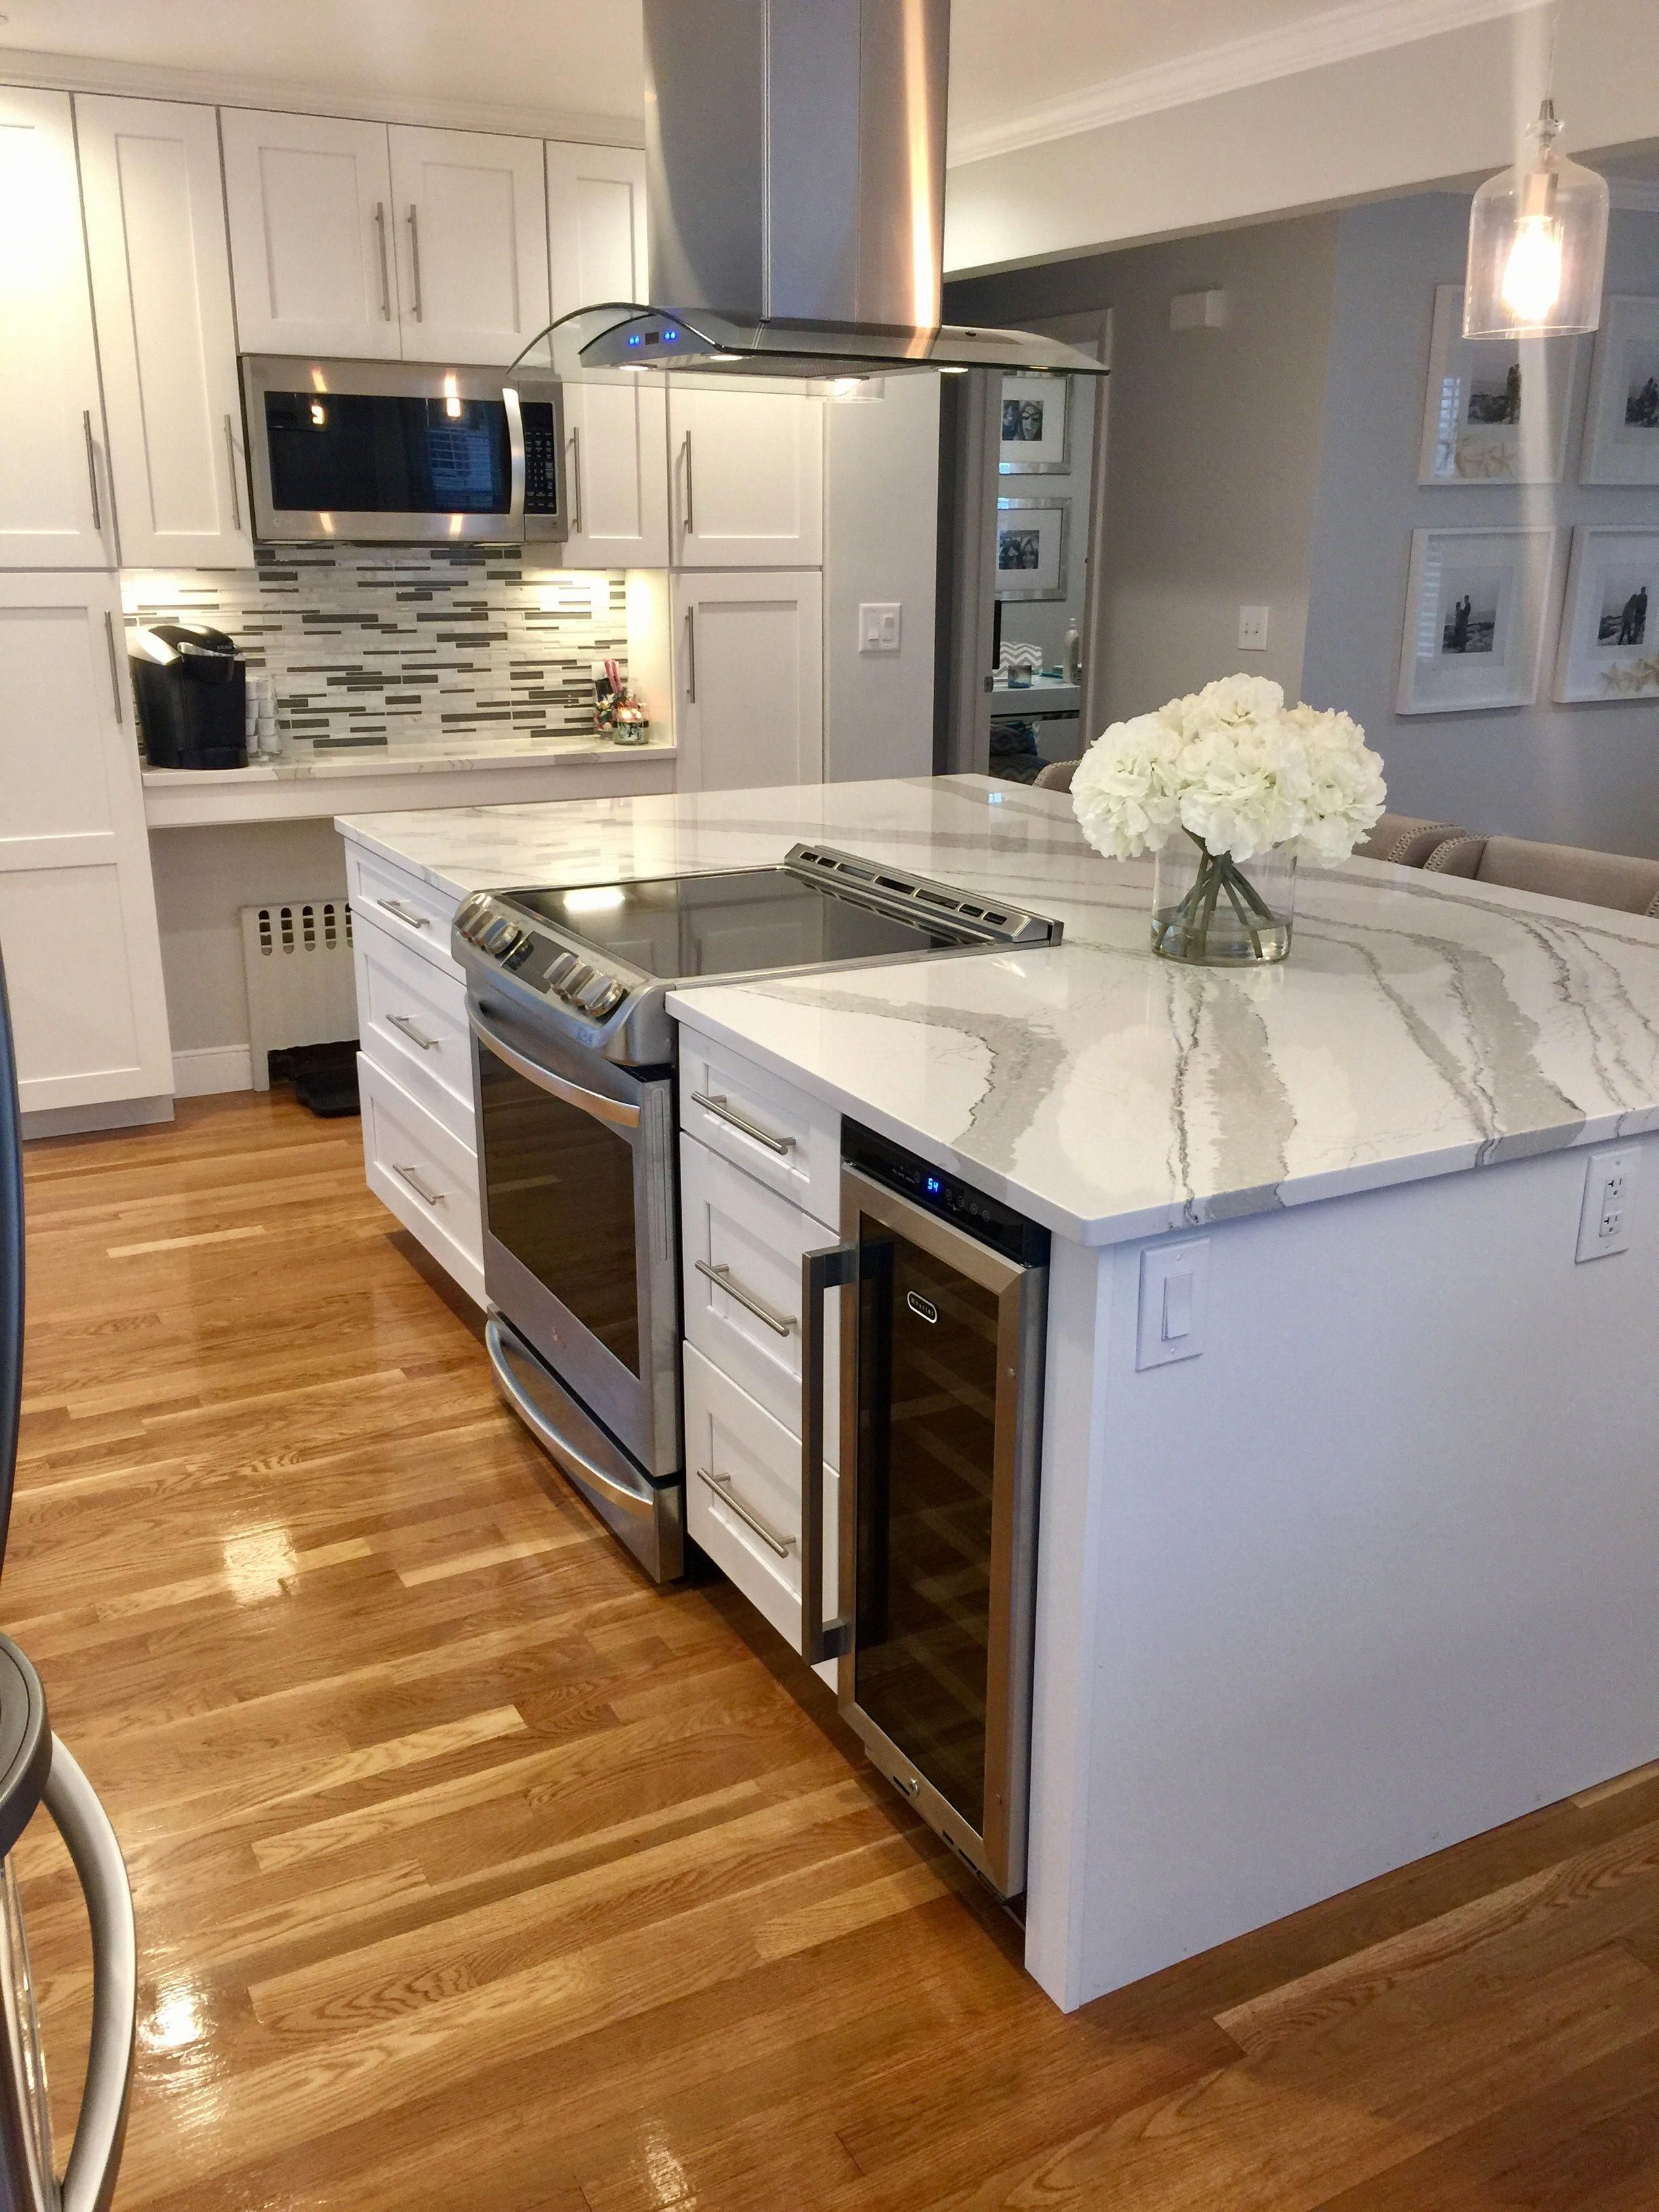 Custom Made Cabinet Options Let Us Customize Your Kitchen Cabinets To Produce A Area